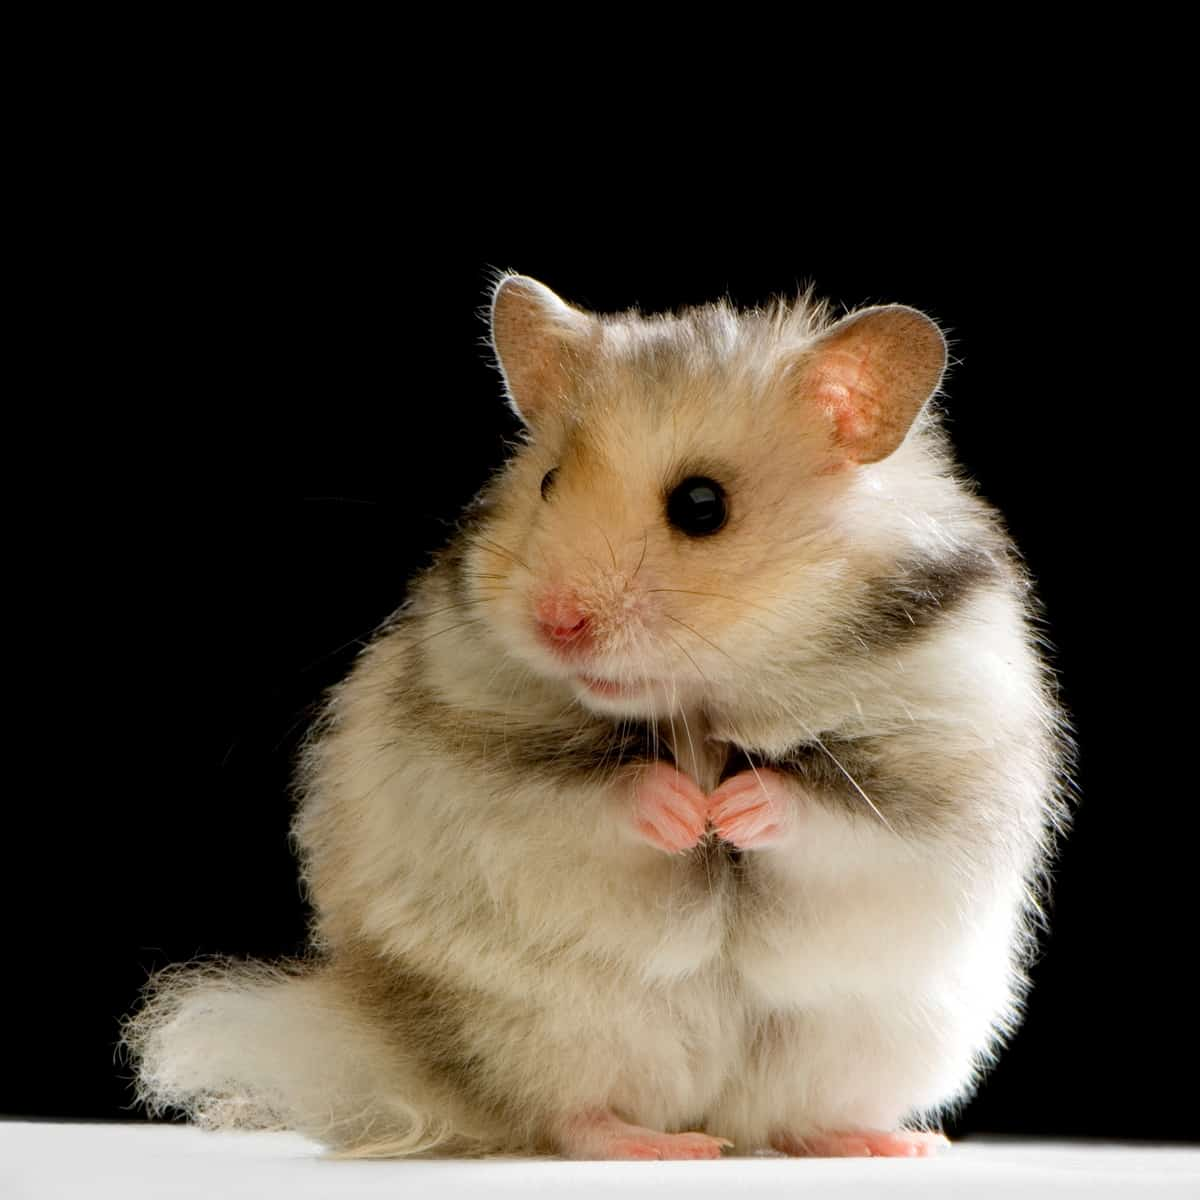 light colored hamster standing in the light with black background